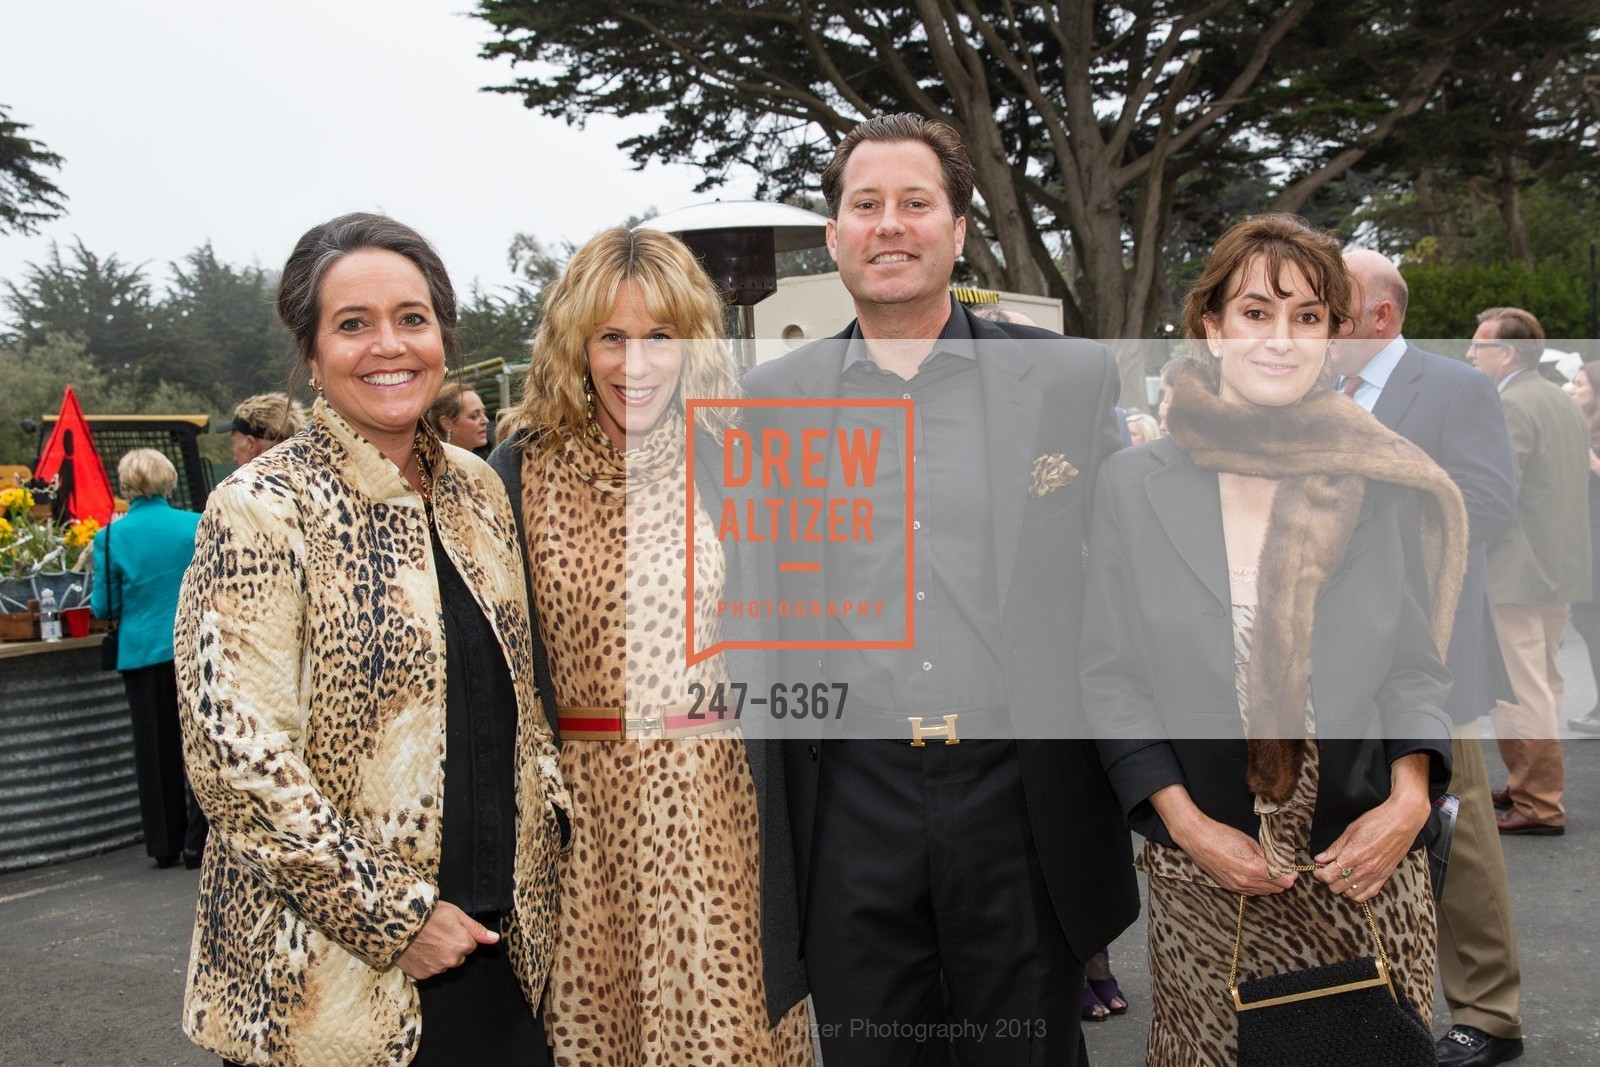 Kristine von Zedlitz, Melissa Barber, Patrick Barber, Serena Fritz-Cope, ZooFest 2013 Hard Hat & Tails, US, May 11th, 2013,Drew Altizer, Drew Altizer Photography, full-service agency, private events, San Francisco photographer, photographer california